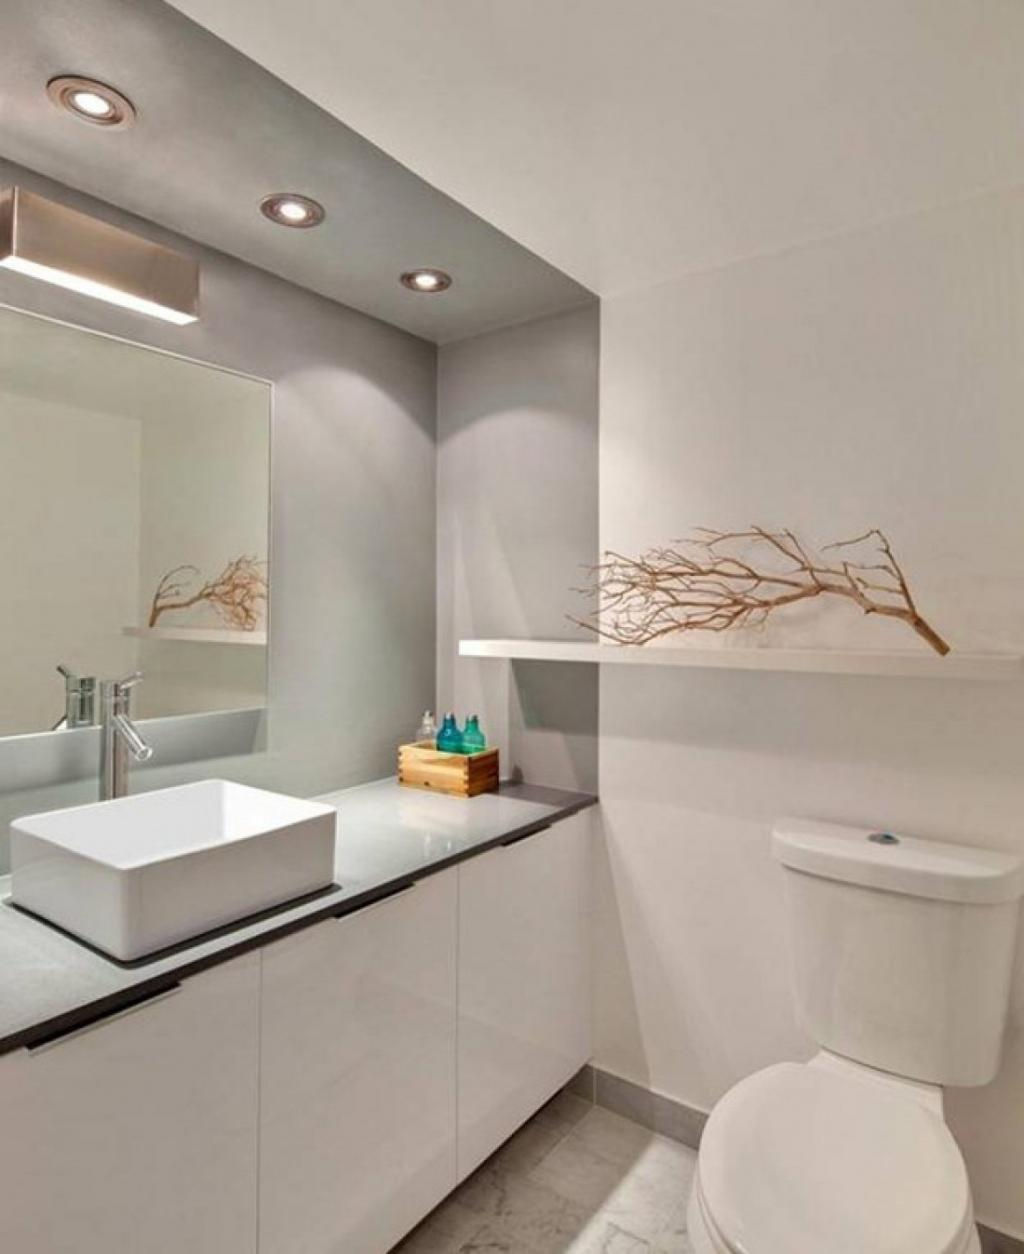 Modern bathroom decor ideas -  Bathroom Styles Design Ideas Bathroom Designs For Apartment